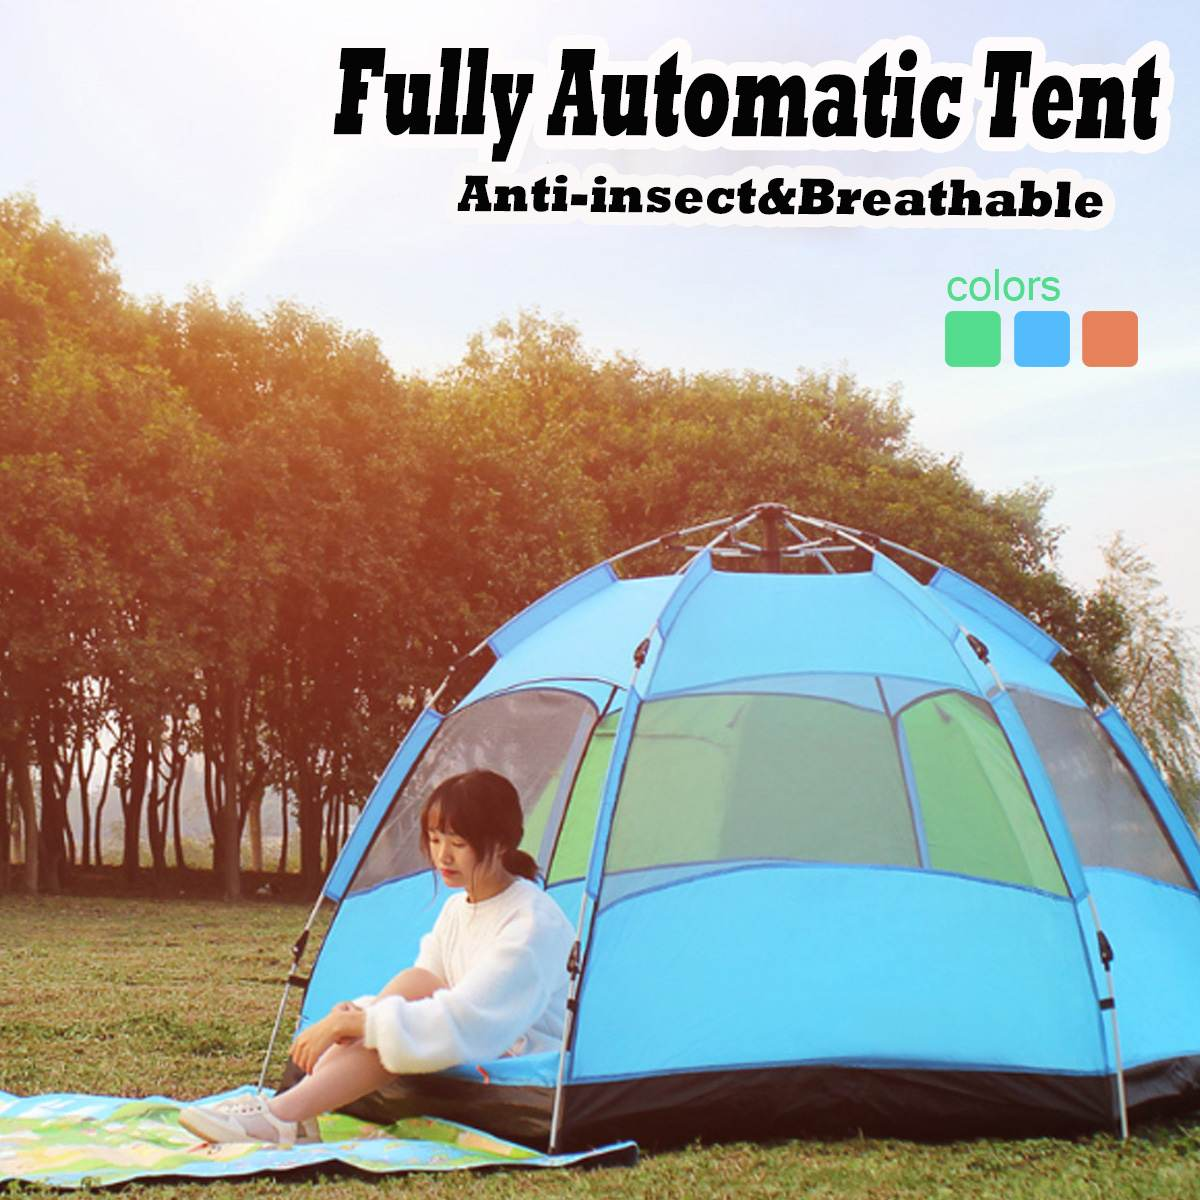 3-5 Person Waterproof Large Automatic Camping Tent Quick Open Tent Outdoor Family Camping Hiking Fishing Tourist Tent3-5 Person Waterproof Large Automatic Camping Tent Quick Open Tent Outdoor Family Camping Hiking Fishing Tourist Tent